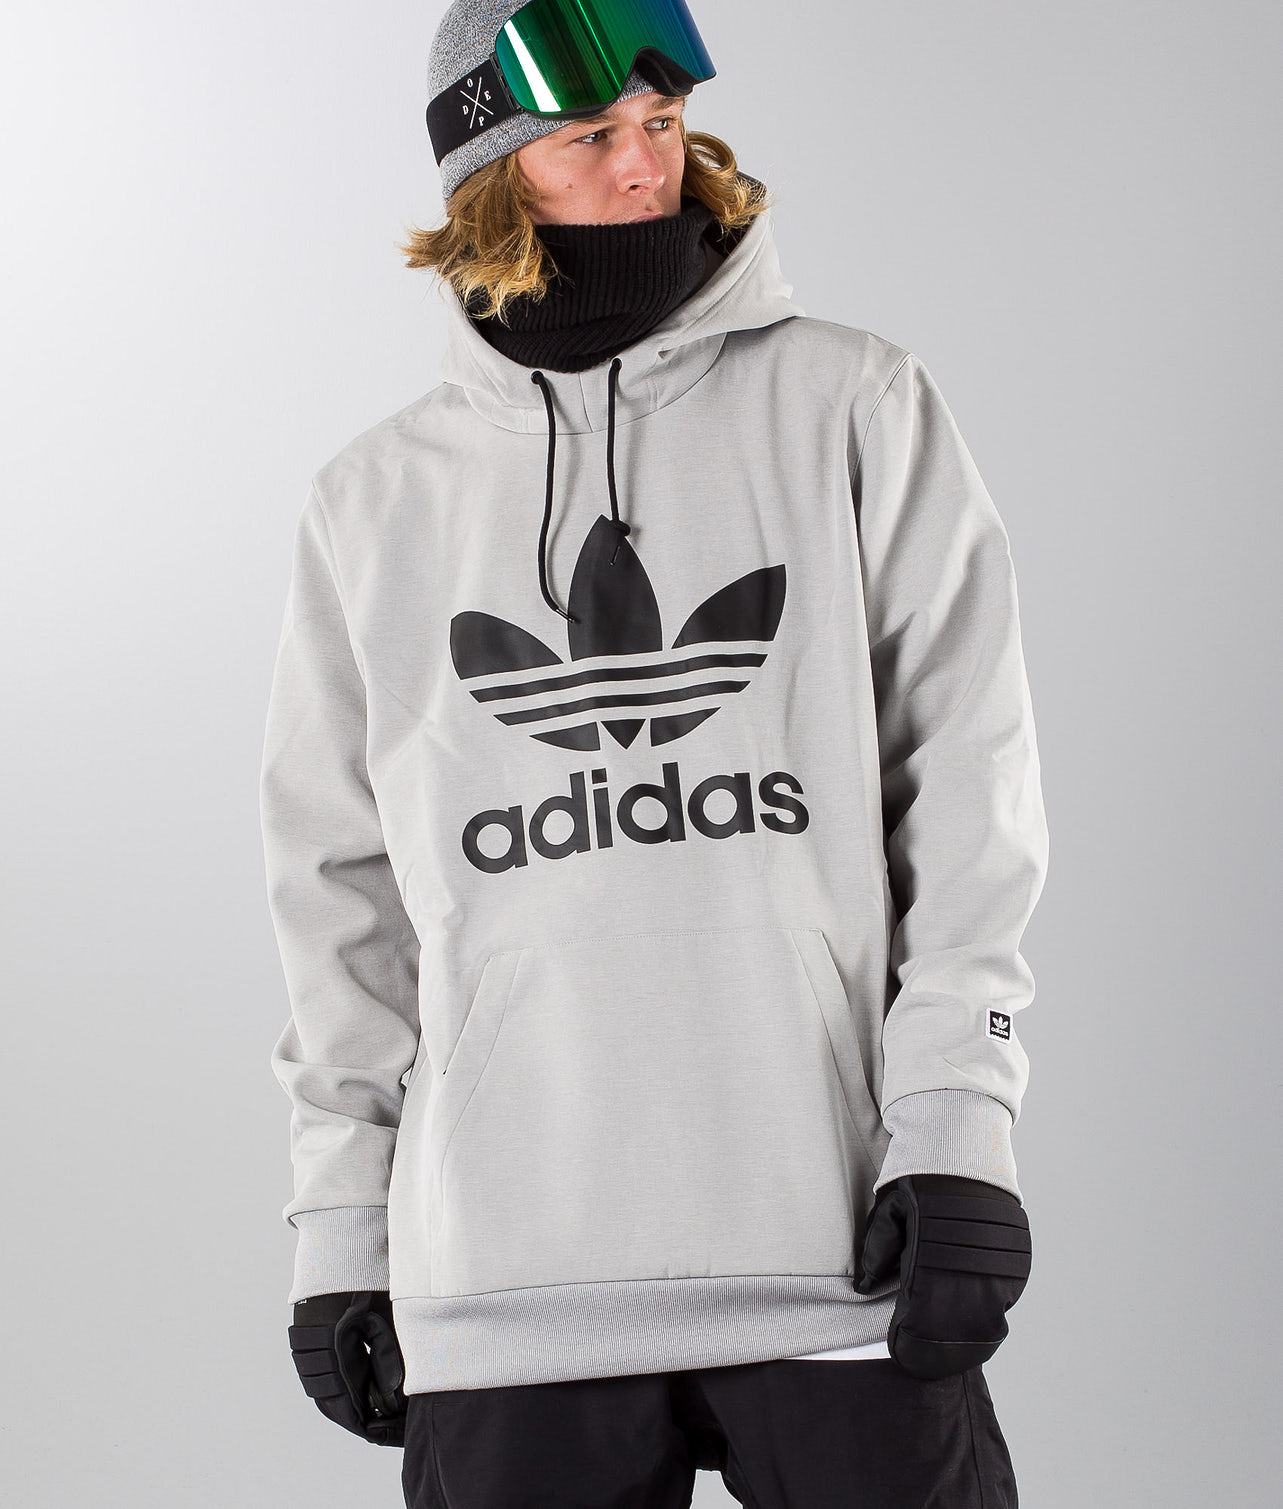 Buy Team Tech Snowboard Jacket from Adidas Snowboarding at Ridestore.com - Always free shipping, free returns and 30 days money back guarantee